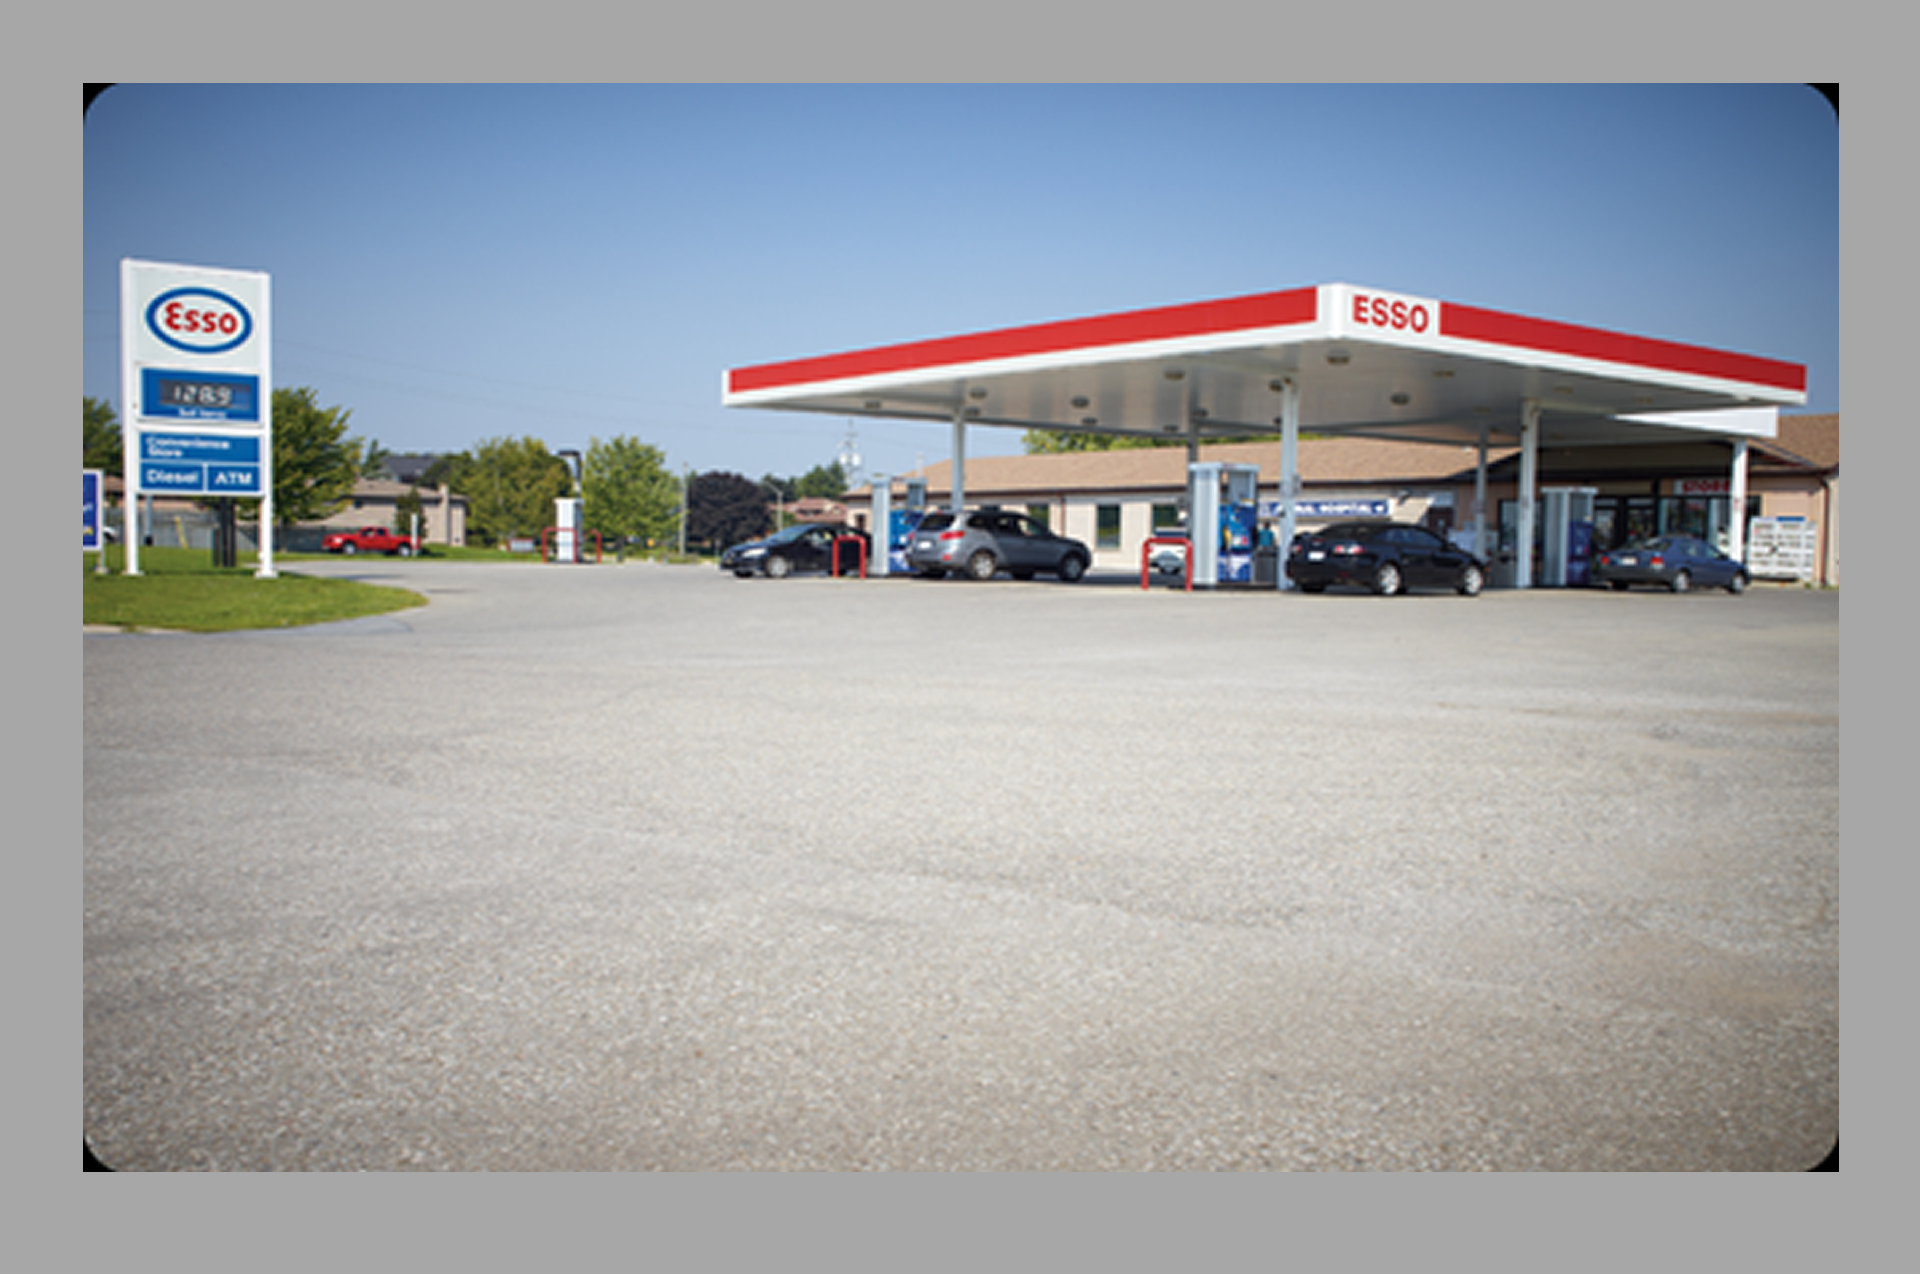 Esso Gas Station with Approved LCBO